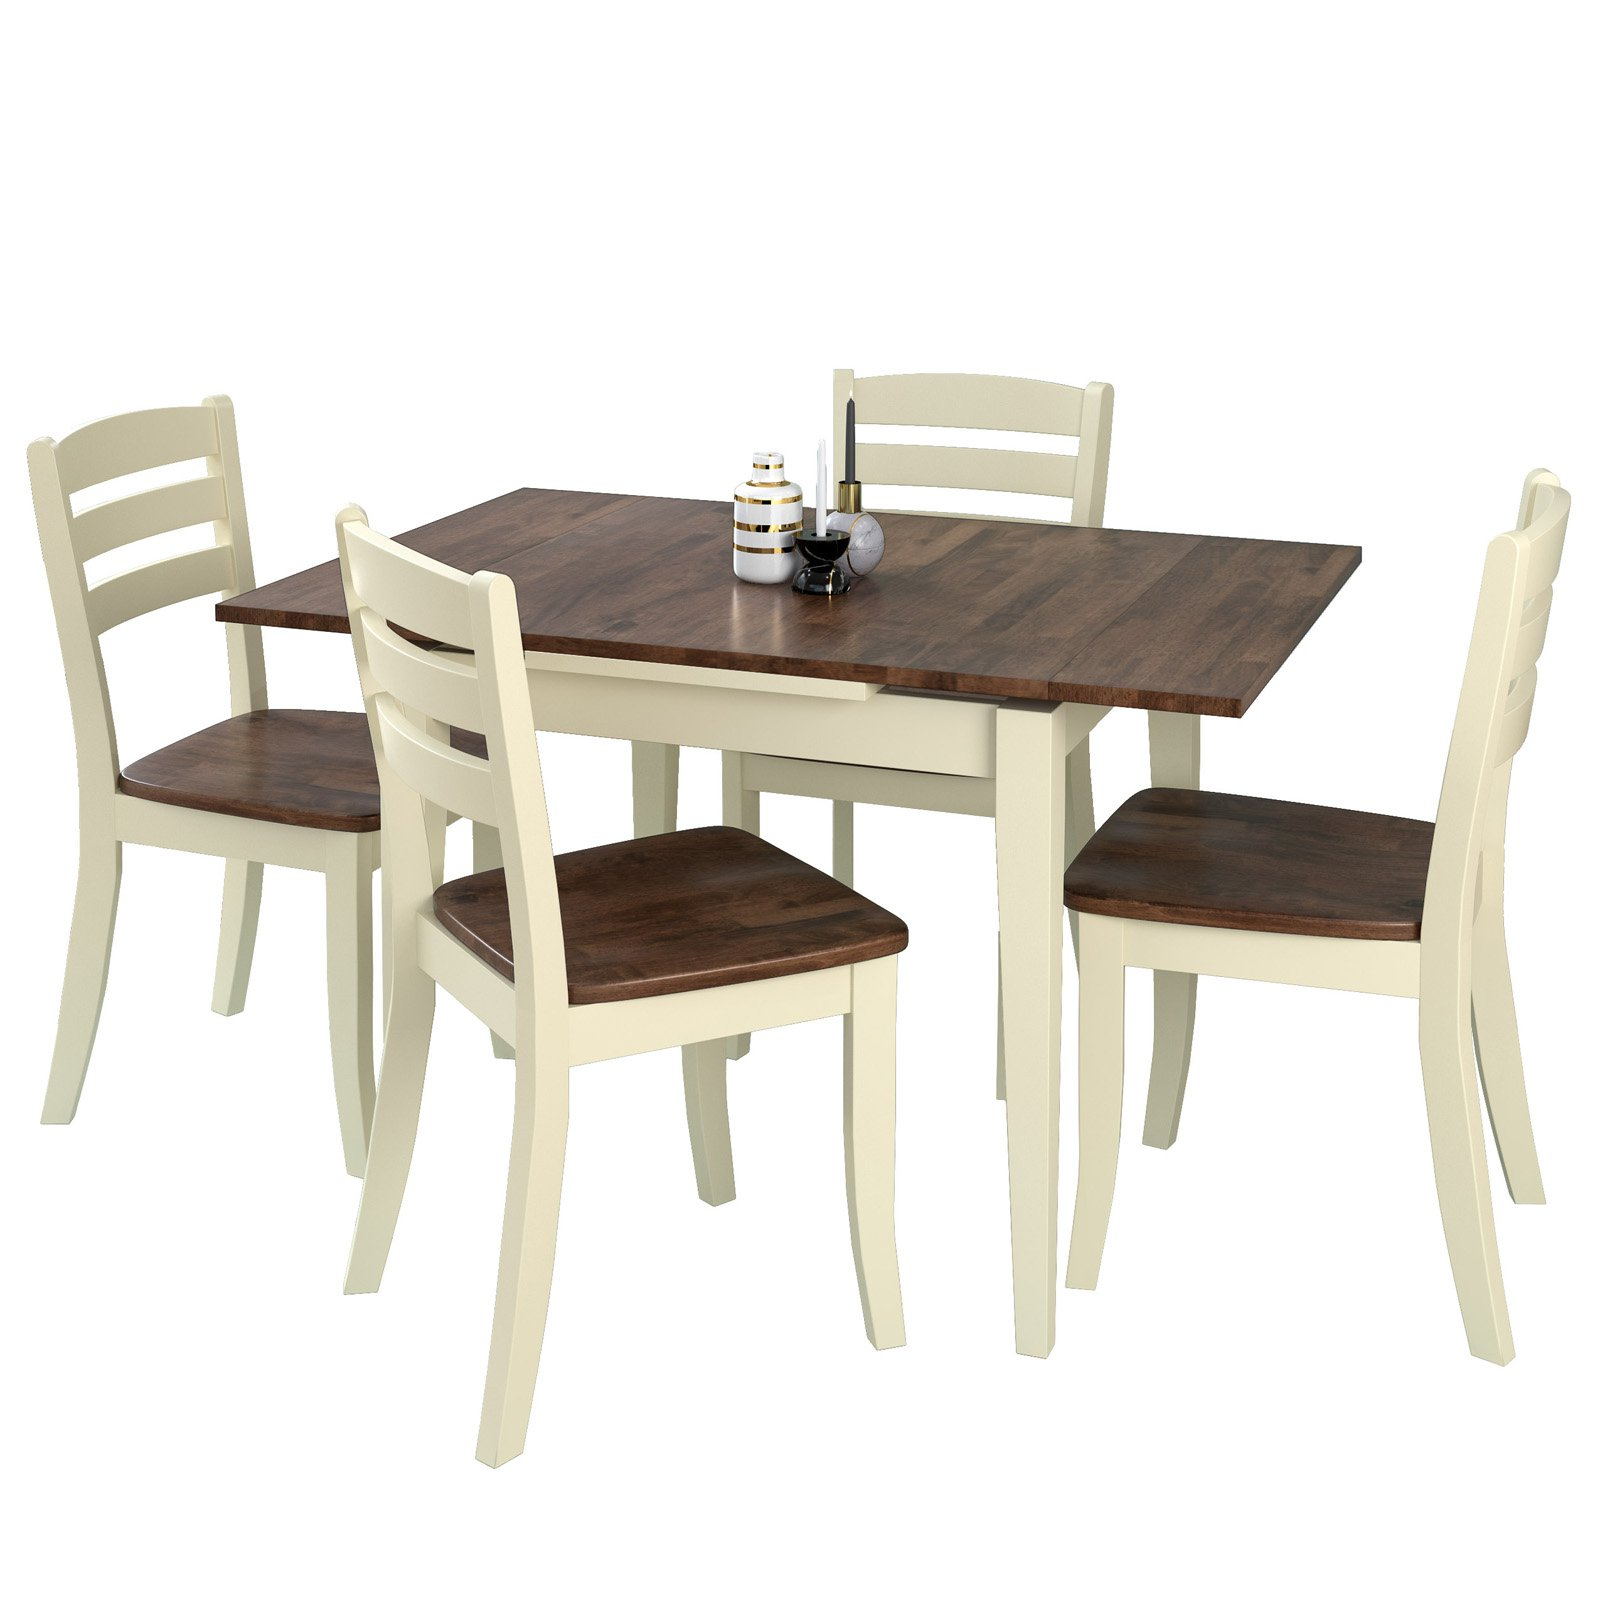 Popular Smyrna 3 Piece Dining Sets Pertaining To Corliving Dillon 5 Piece Rectangular Extendable Dining Set (View 17 of 20)